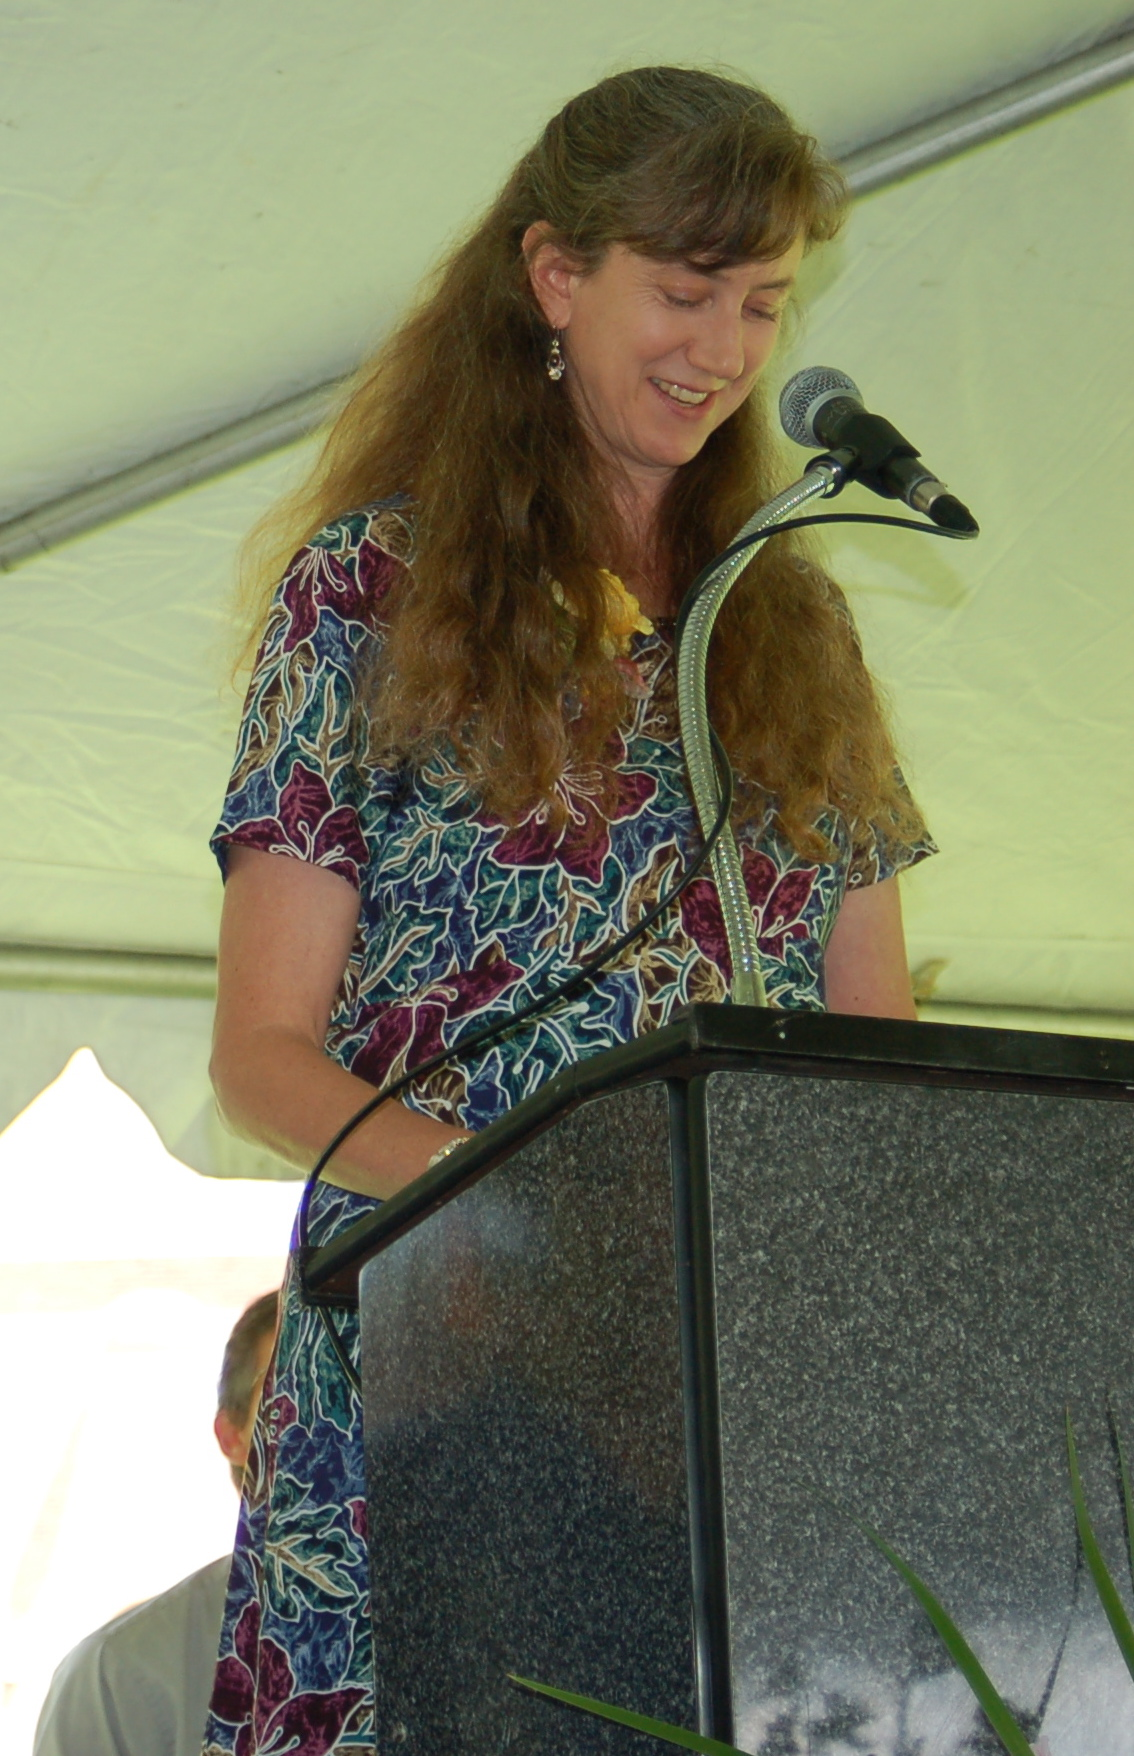 Elizabeth speaking at a high school graduation